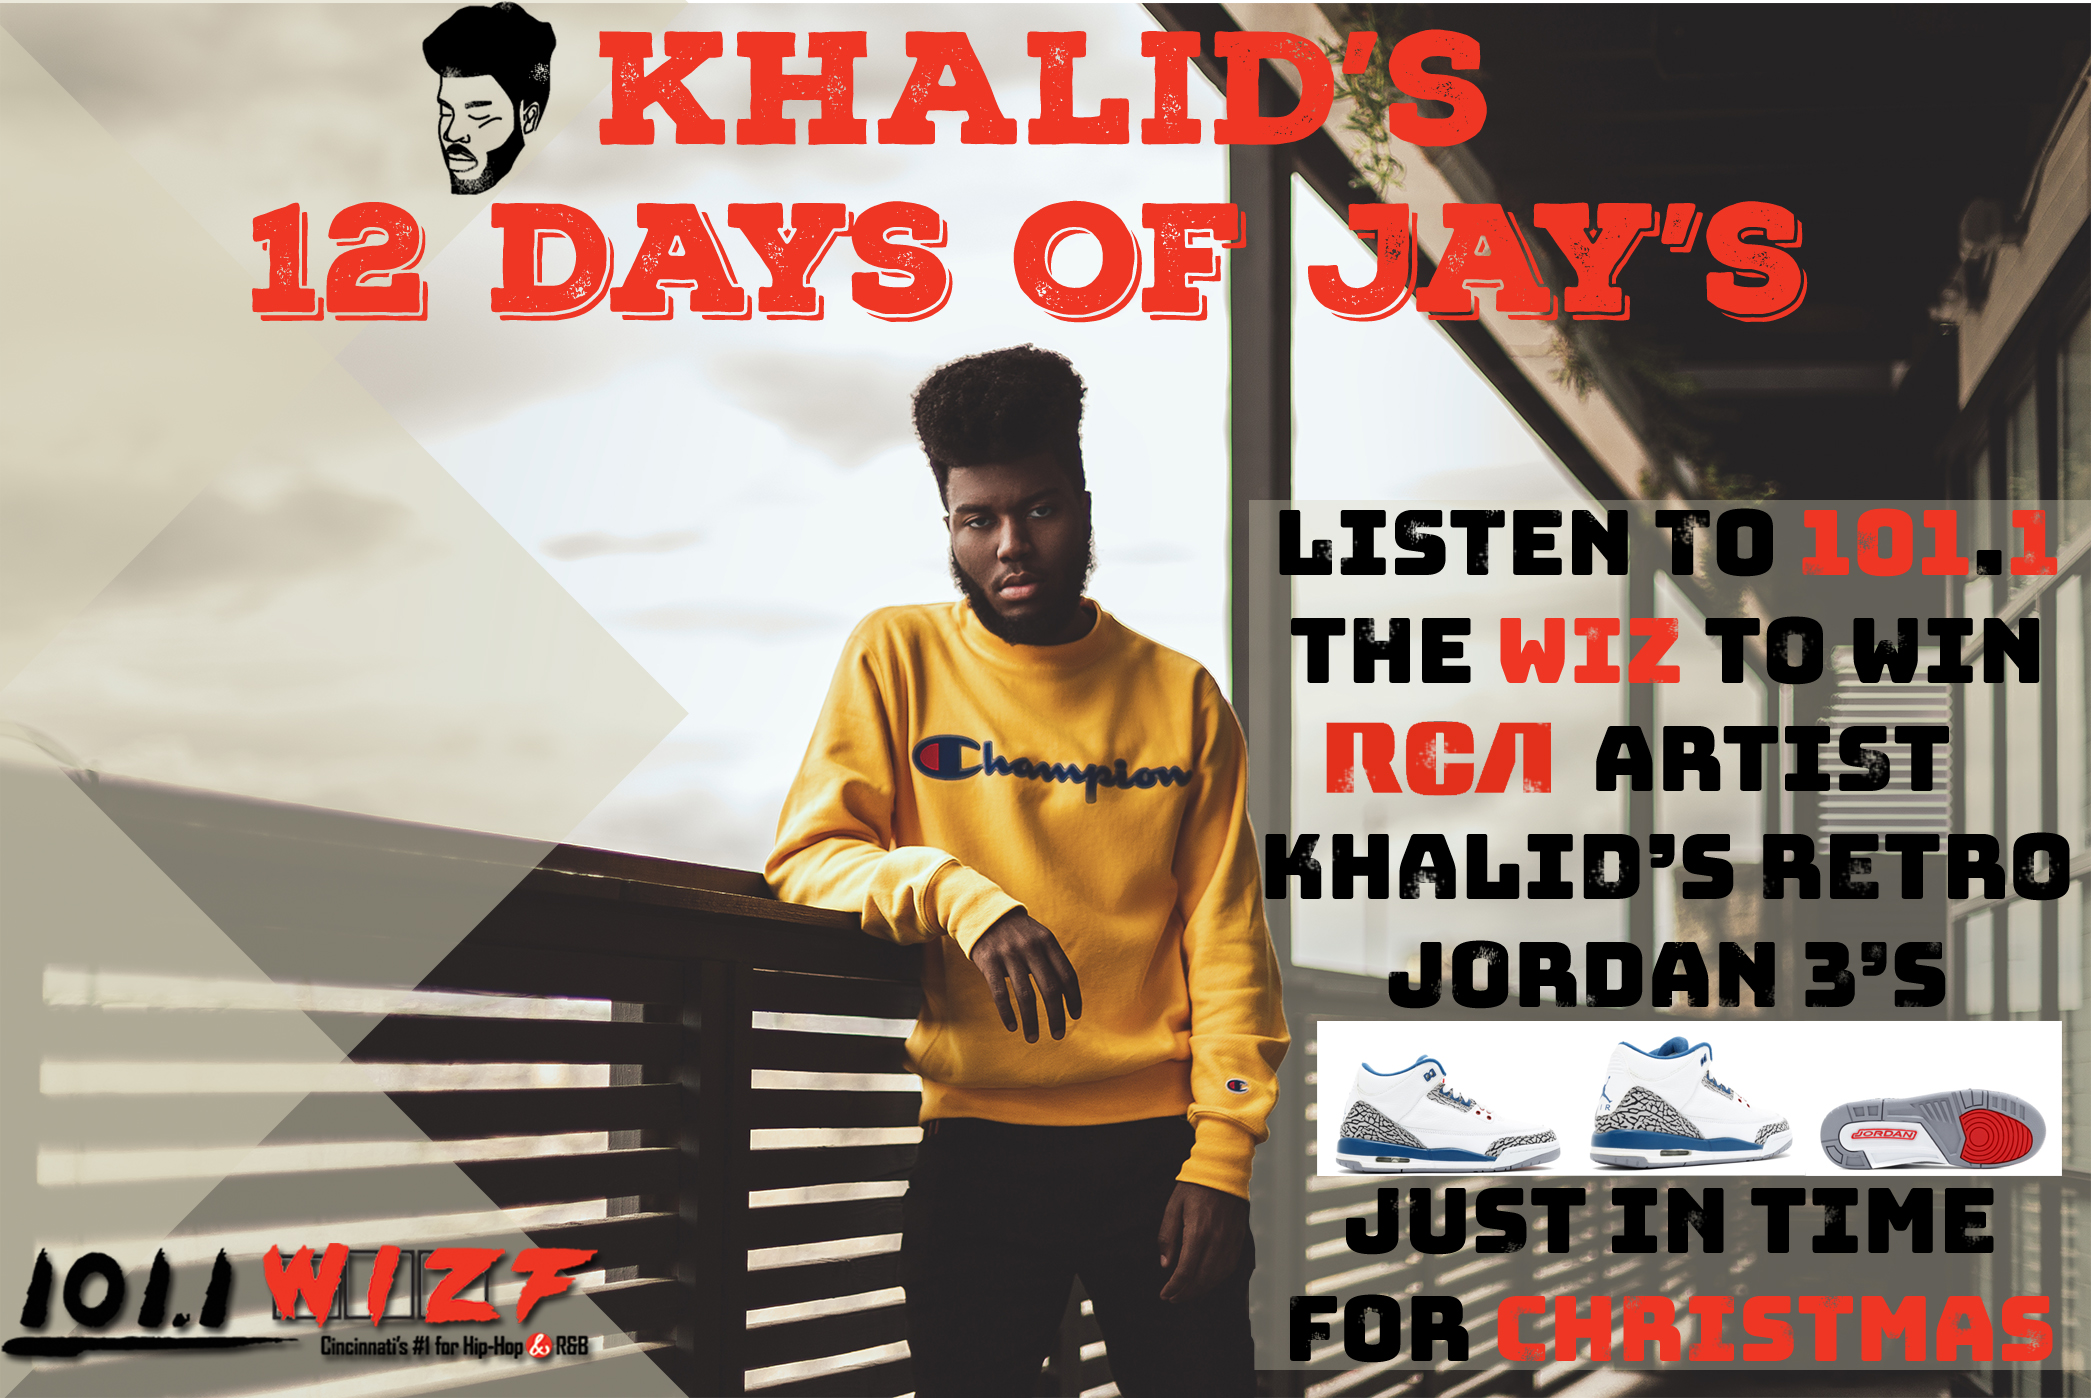 KHALID'S 12 DAYS OF J'S